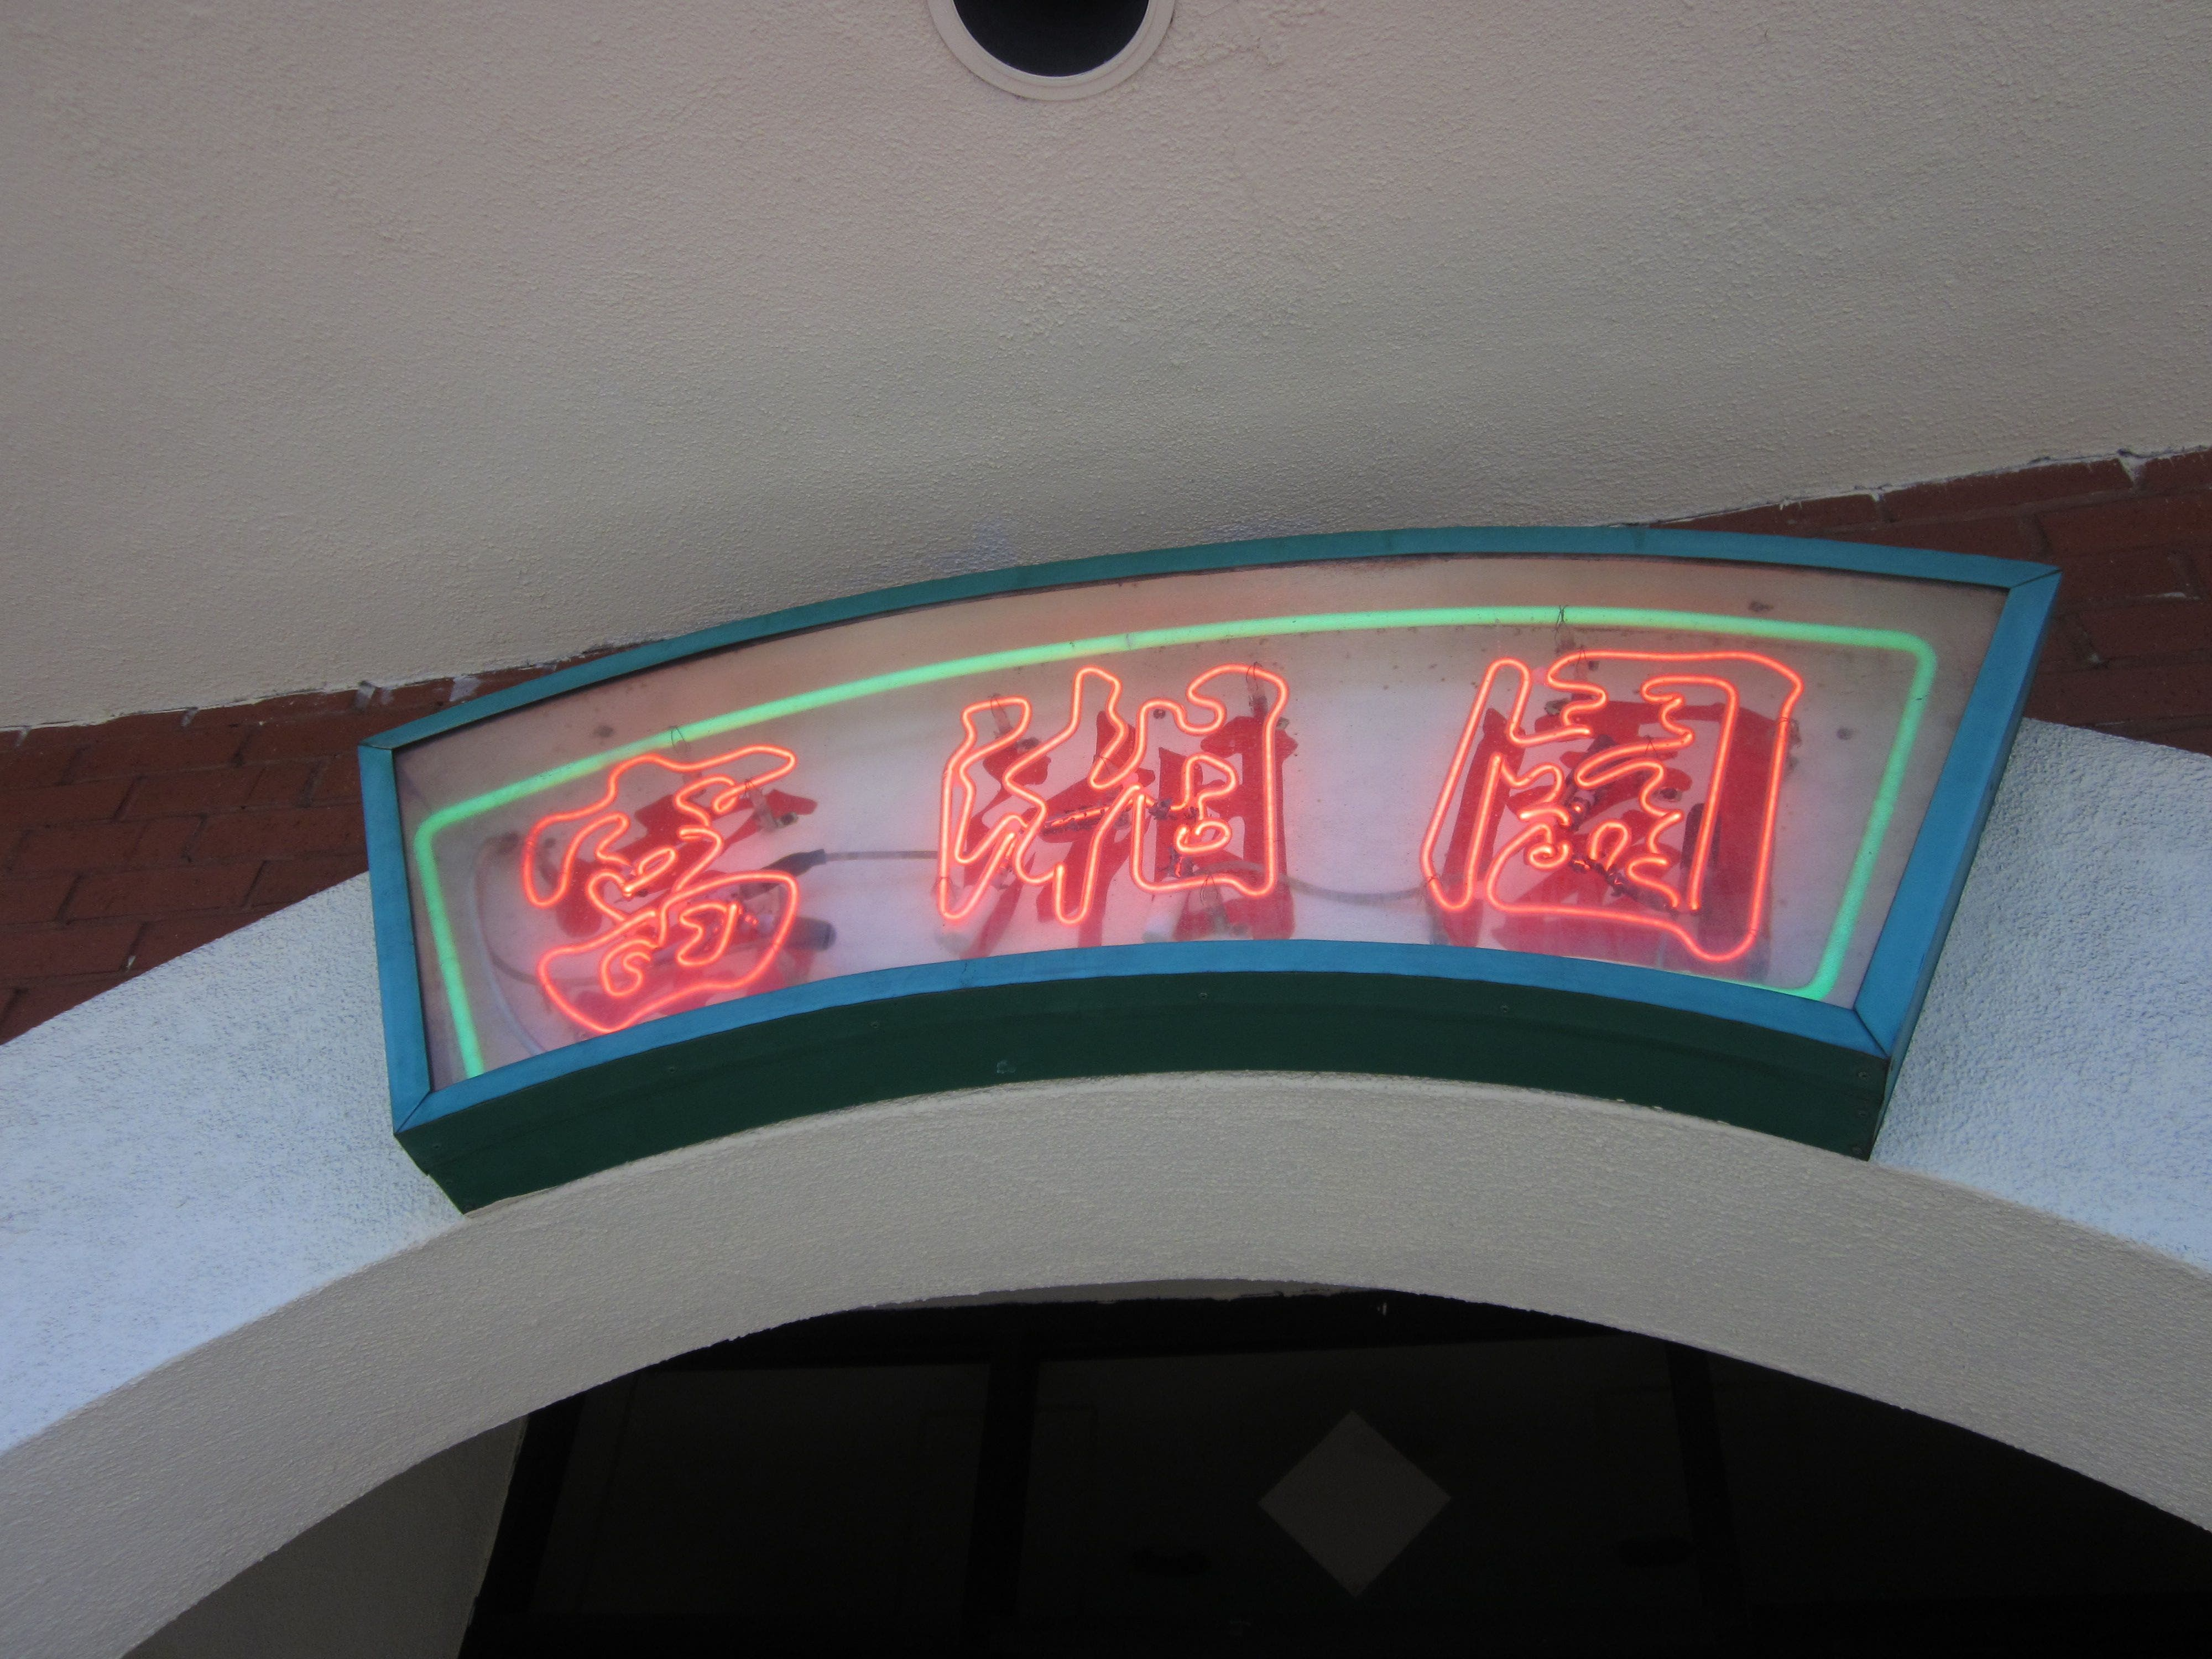 Chinese Restaurants Open On Christmas.Chinese Restaurants Open On Xmas Sherman Oaks Ca Patch